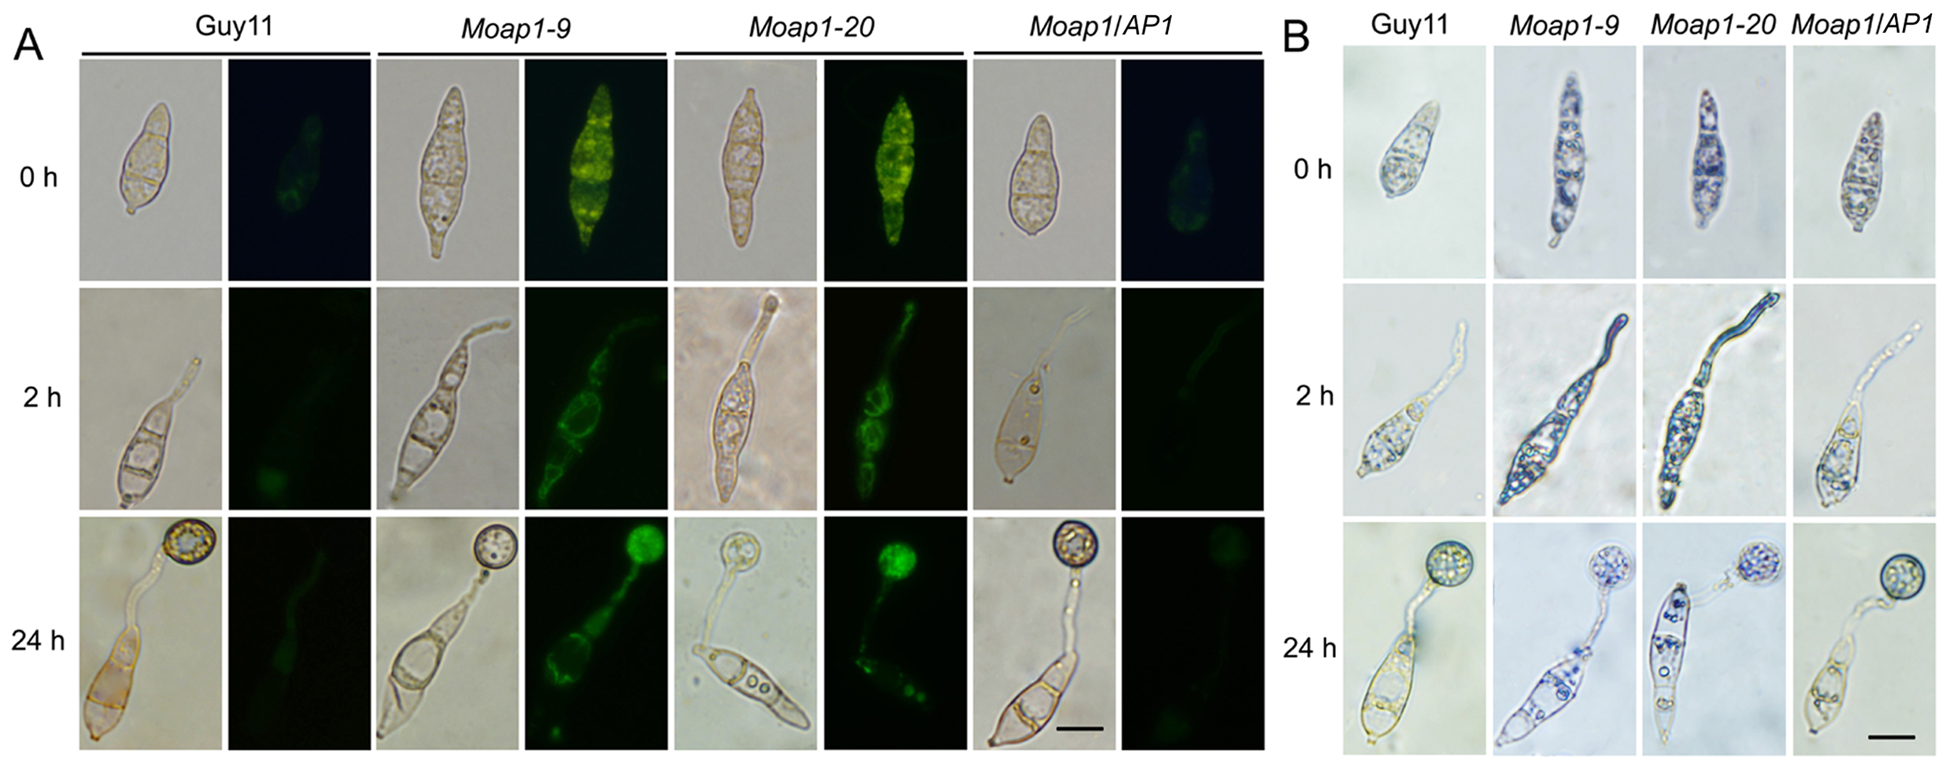 The ROS accumulation is compromised in the <i>Moap1</i> mutant during infection.